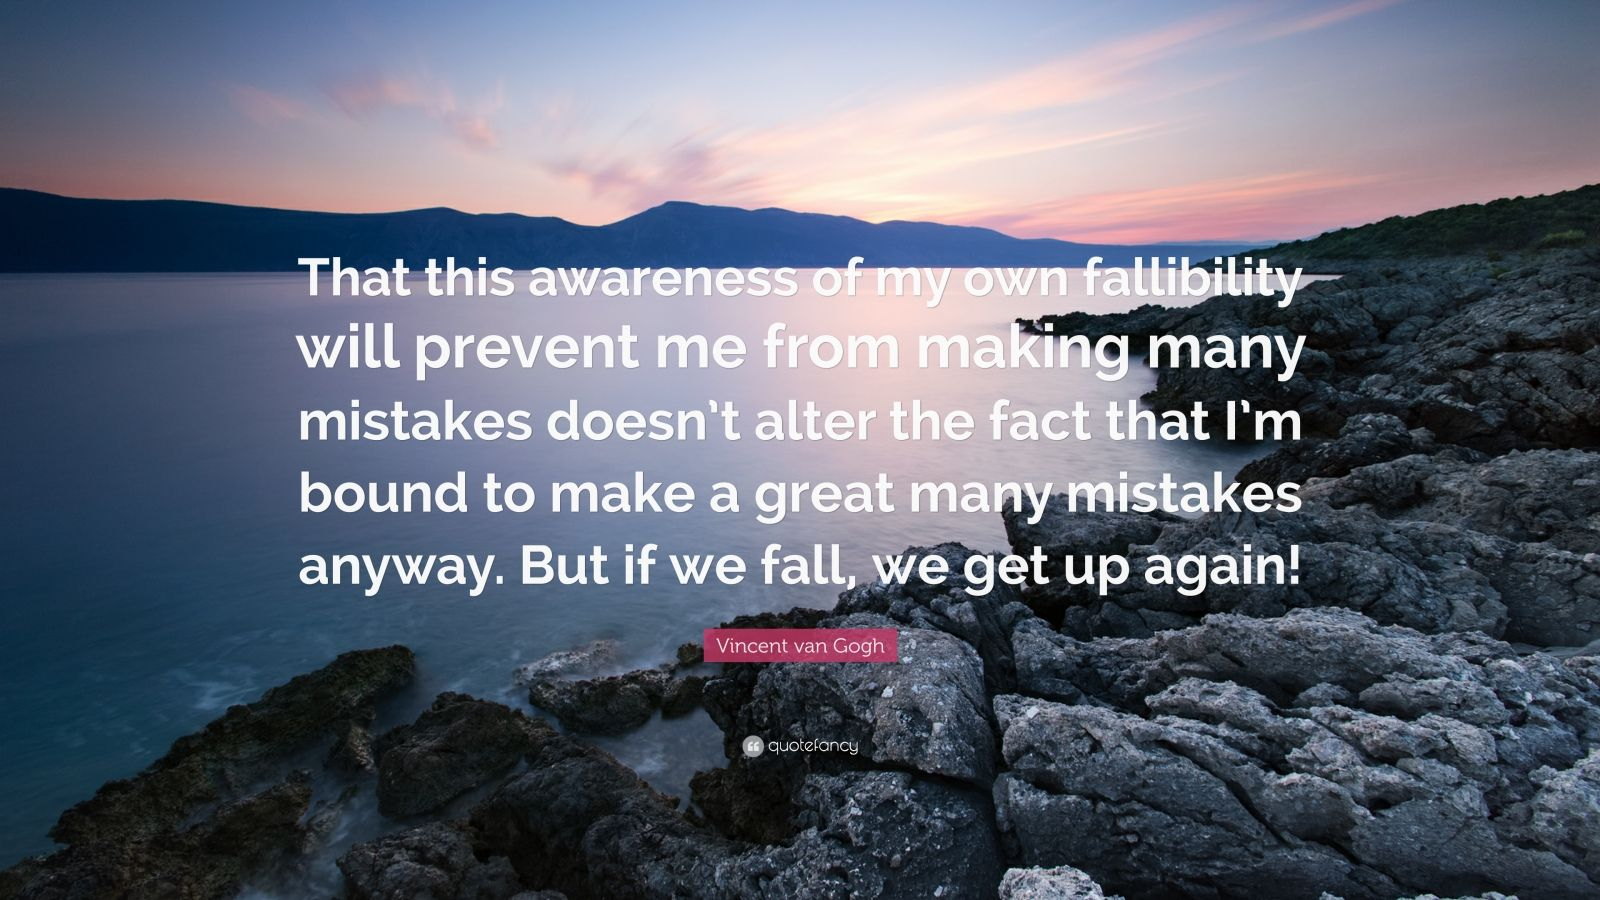 """Vincent van Gogh Quote: """"That this awareness of my own fallibility will prevent me from making many mistakes doesn't alter the fact that I'm bound to make a great many mistakes anyway. But if we fall, we get up again!"""""""